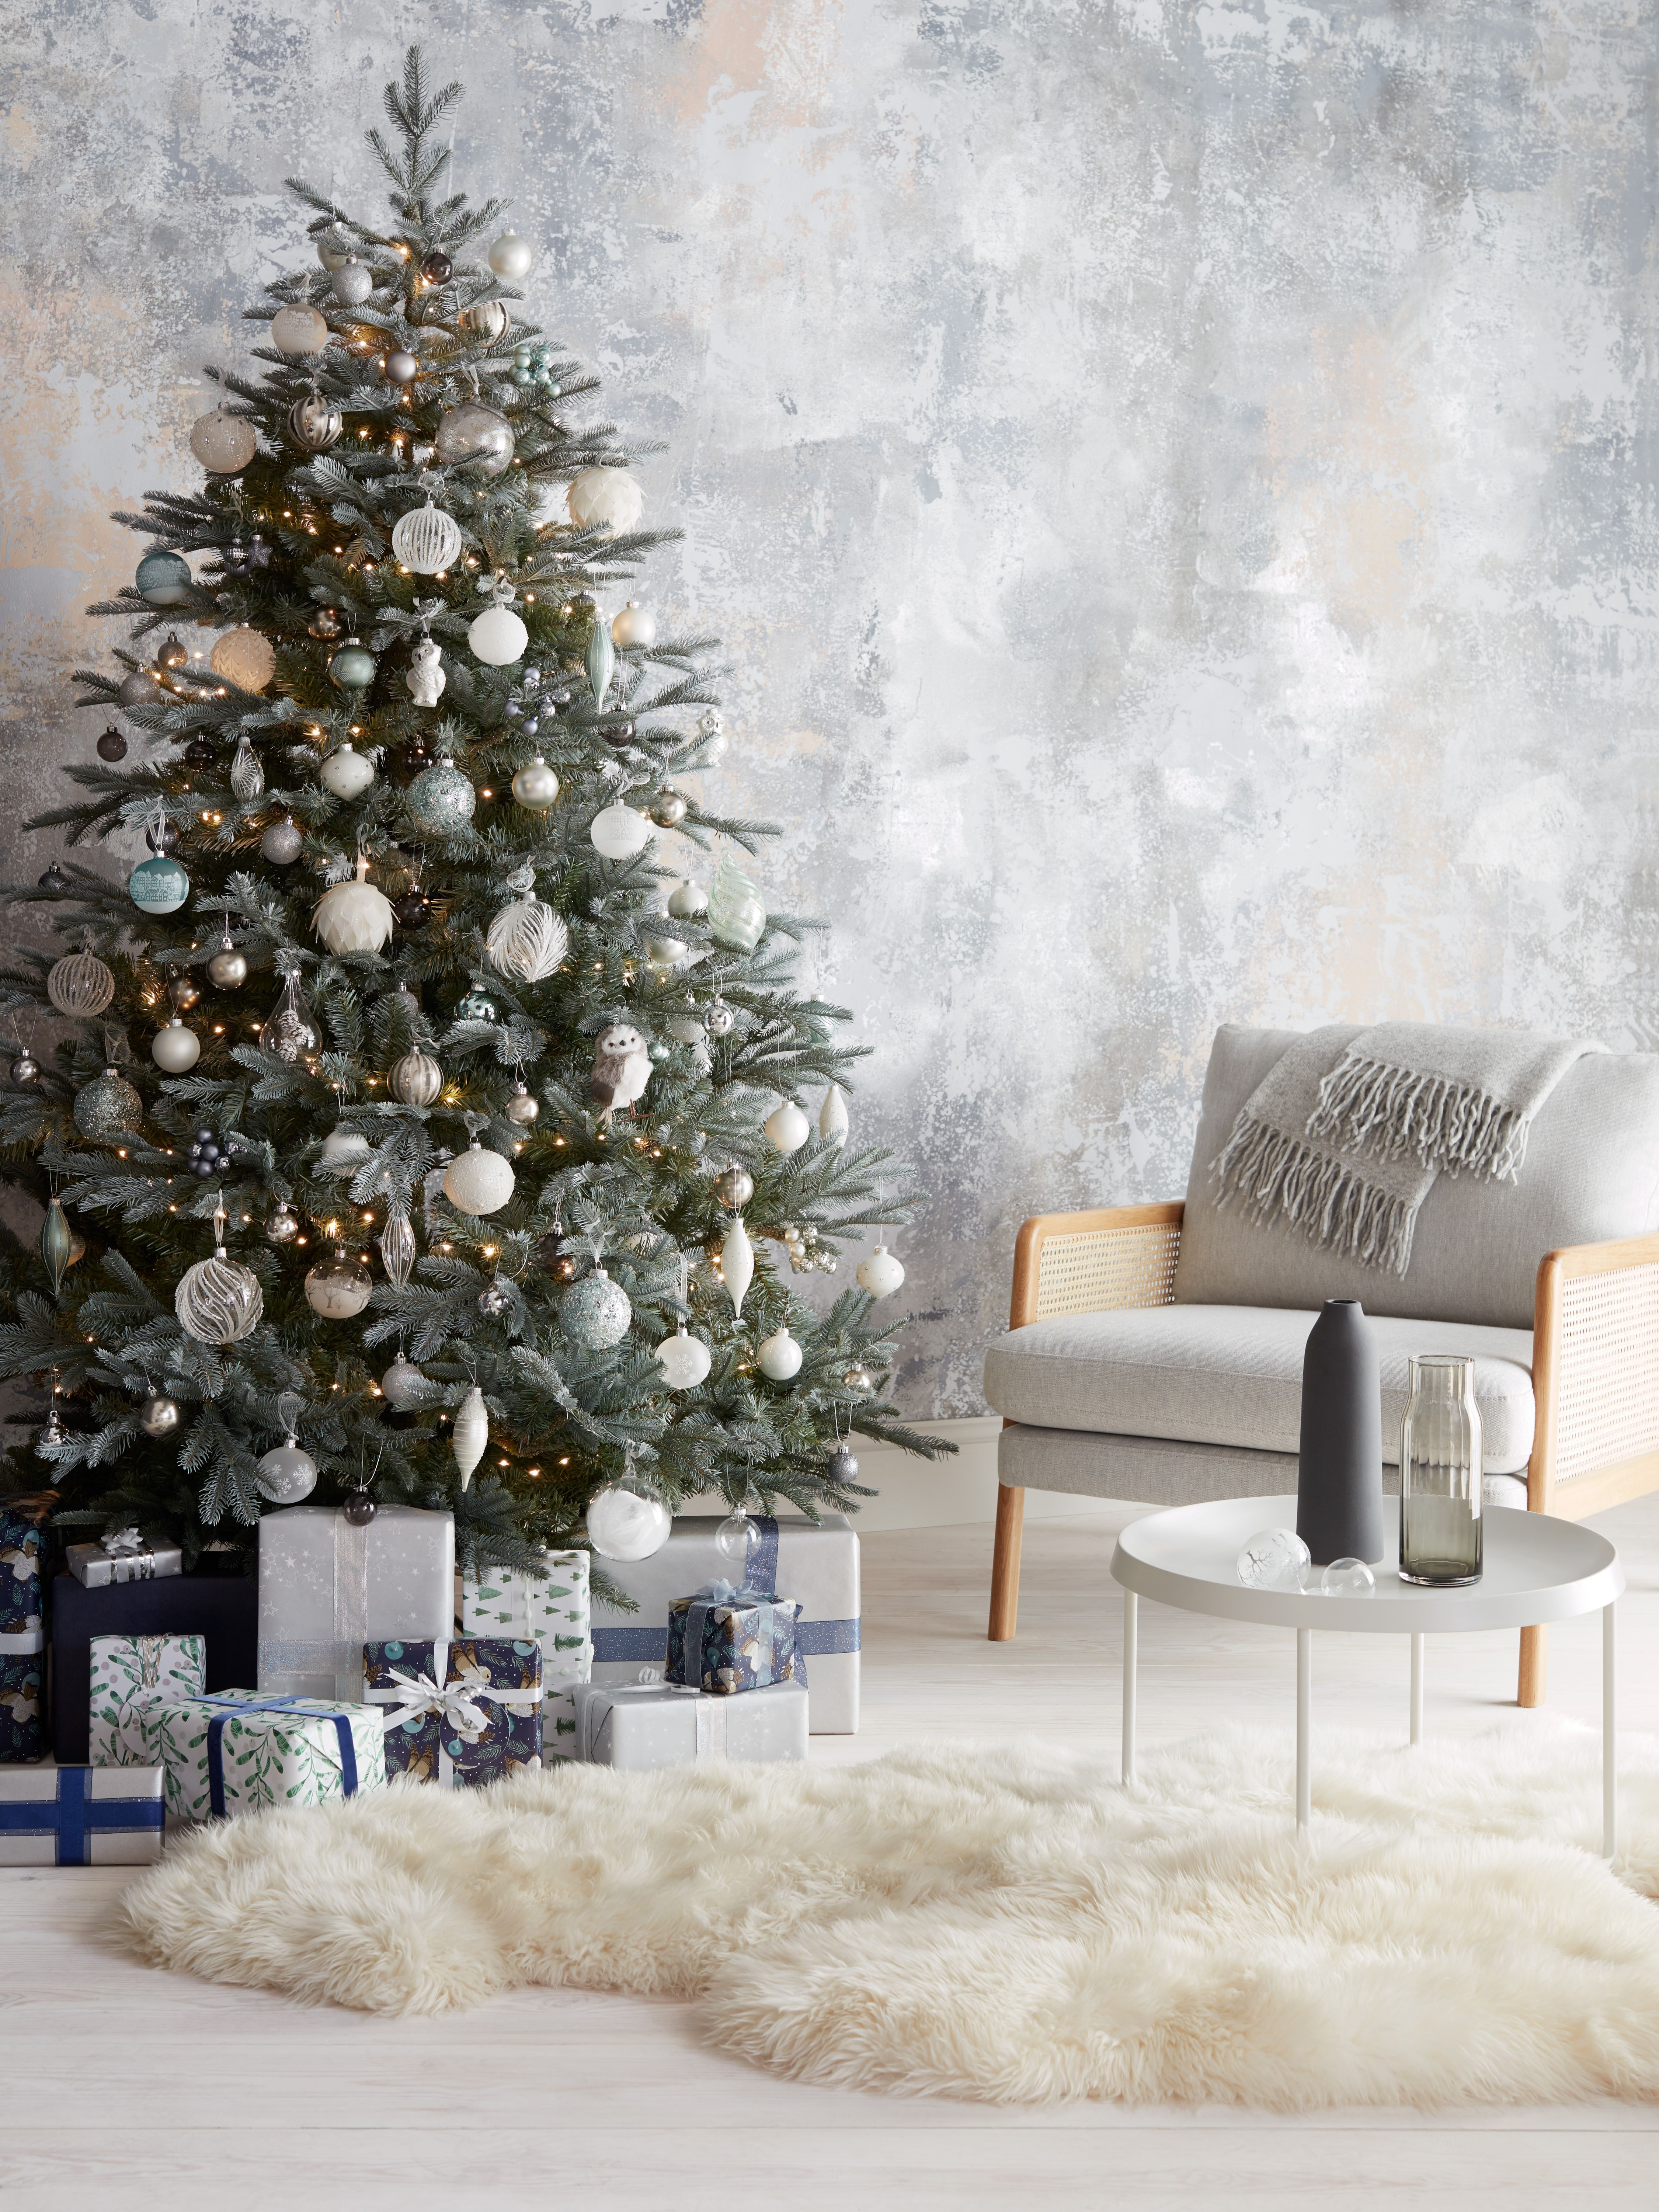 John Lewis 2019 Christmas Decorations And Themes \u2013 Best